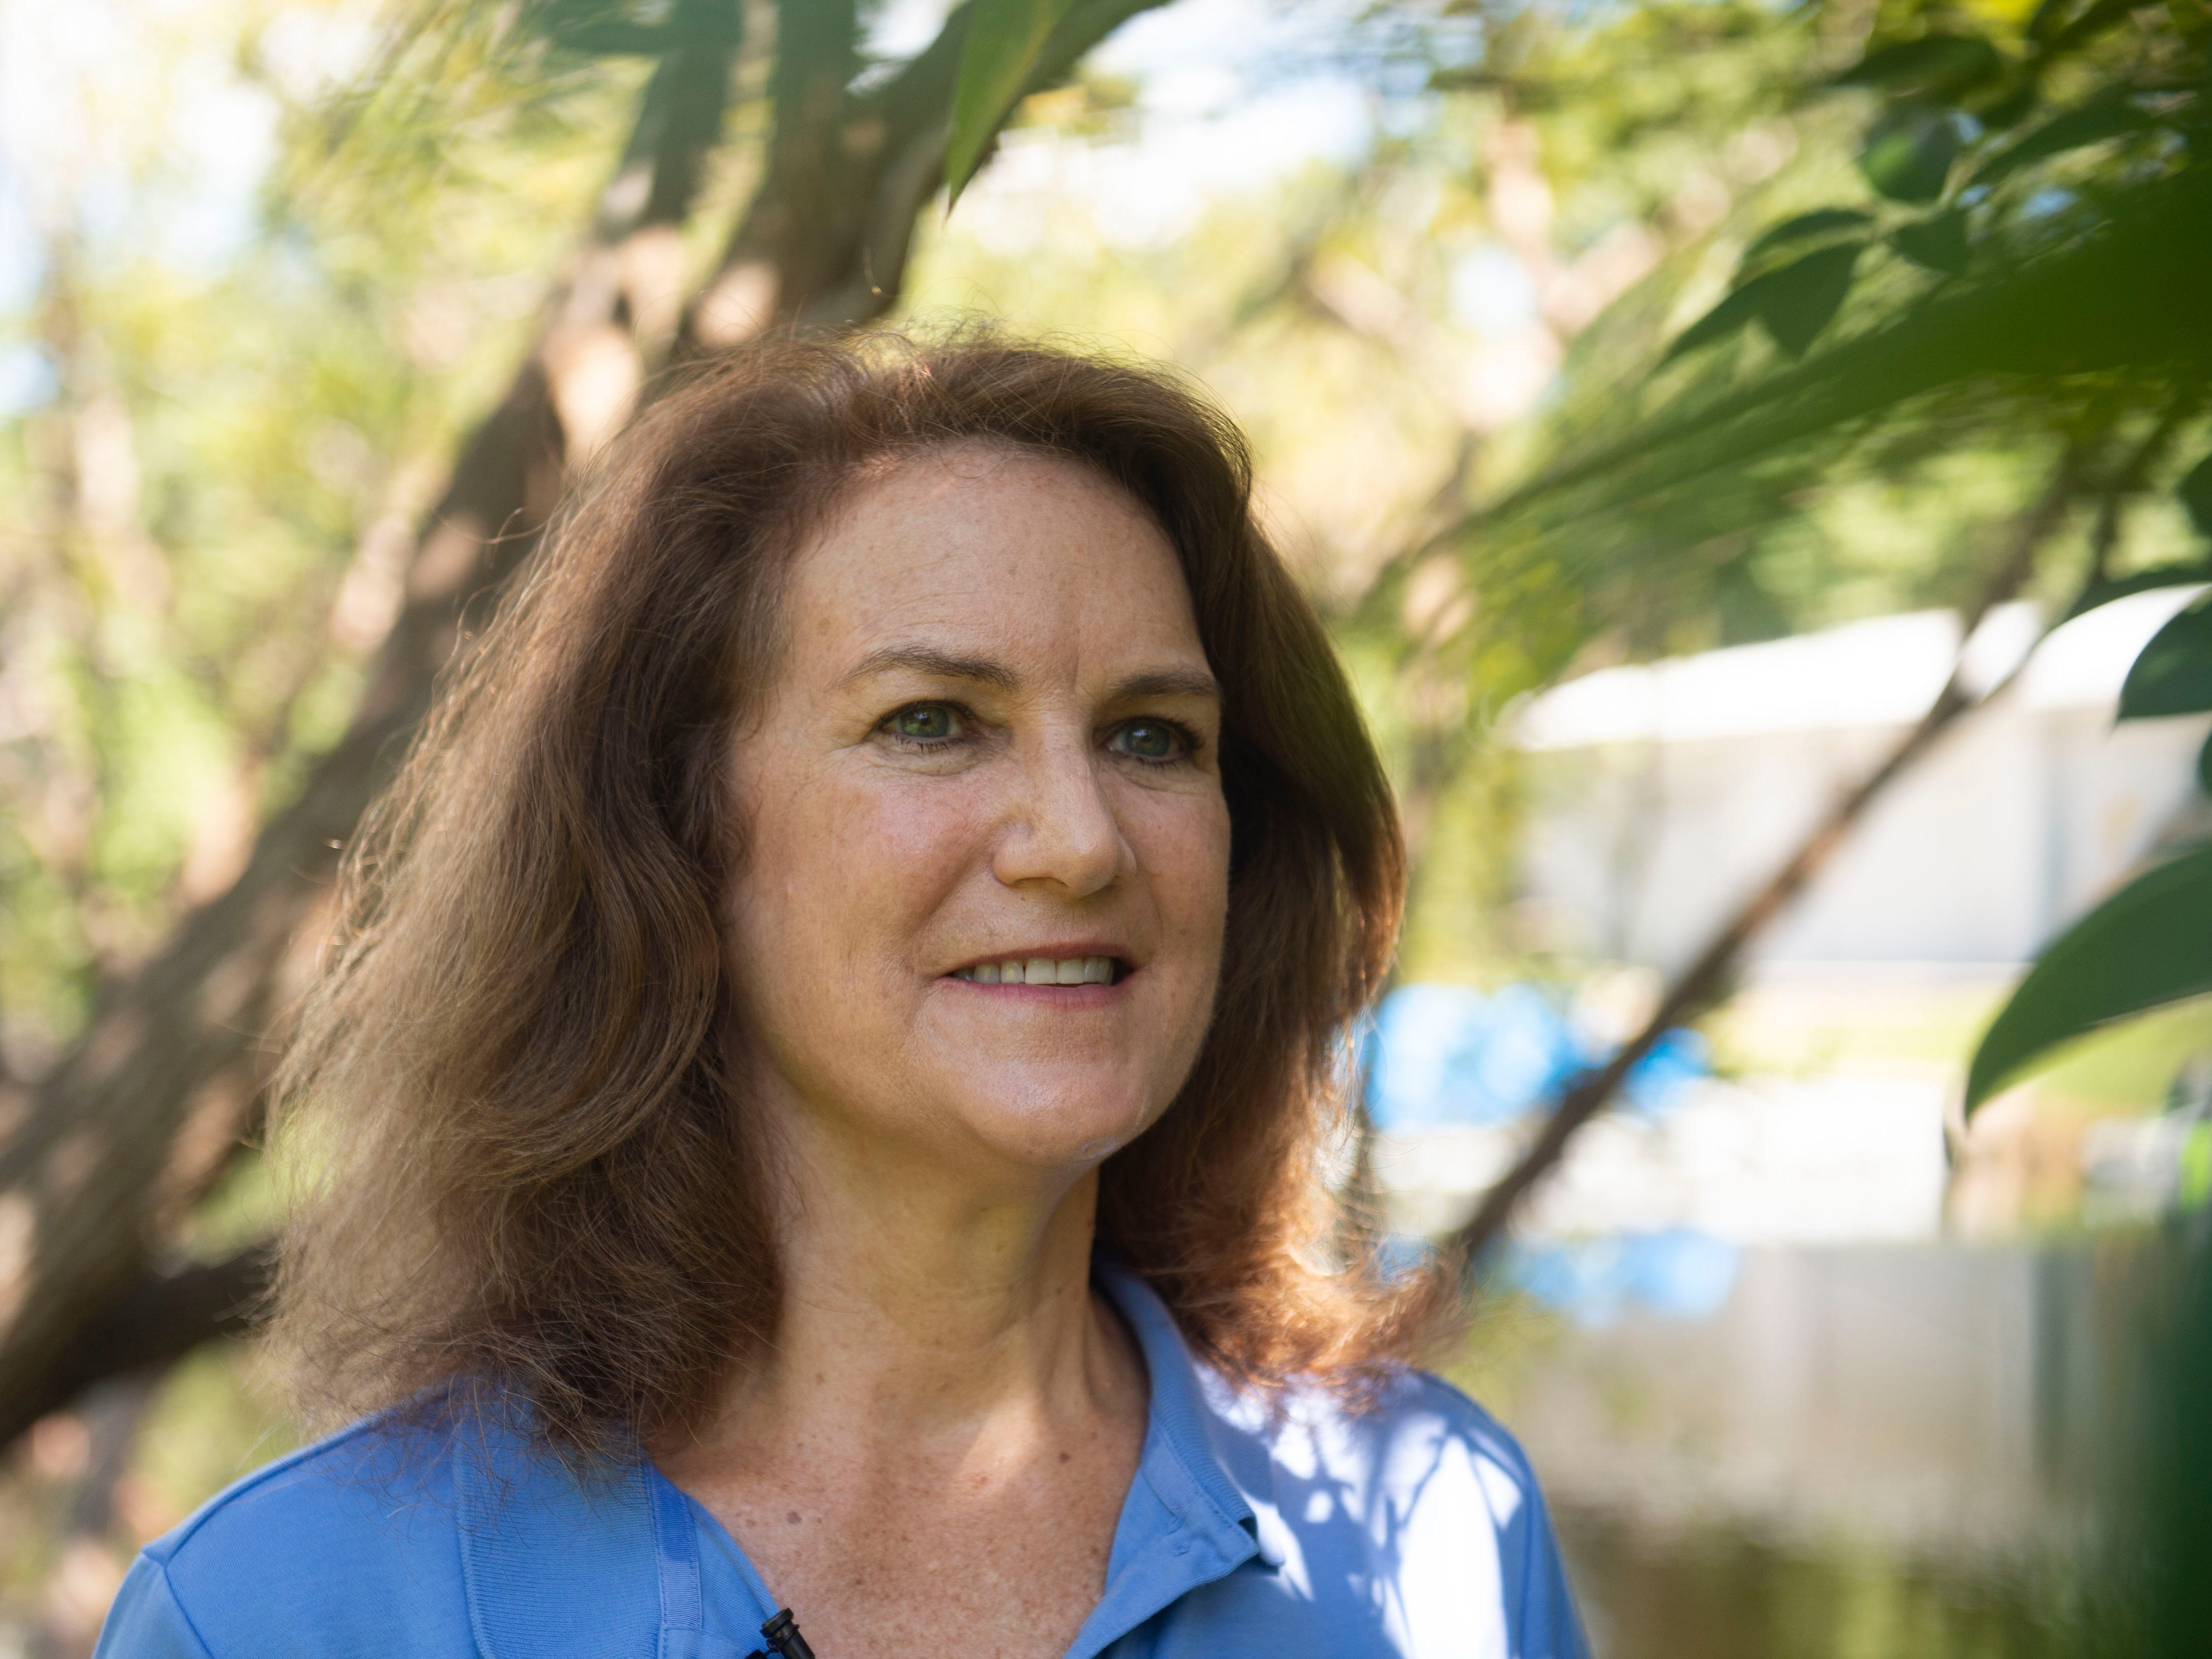 """Laura Geselbracht, 59, of Fort Lauderdale, is a senior marine scientist at The Nature Conservancy who is concerned about climate change, sea level rise and coastal resiliency this election year. Geselbracht hopes to see individuals, all levels of governments, corporations and small businesses making an effort to battle climate change. """"It's amazing what we can accomplish when we put our mind to it. But if we're just avoiding the problem, that's not helping anybody over the long term,"""" she said."""